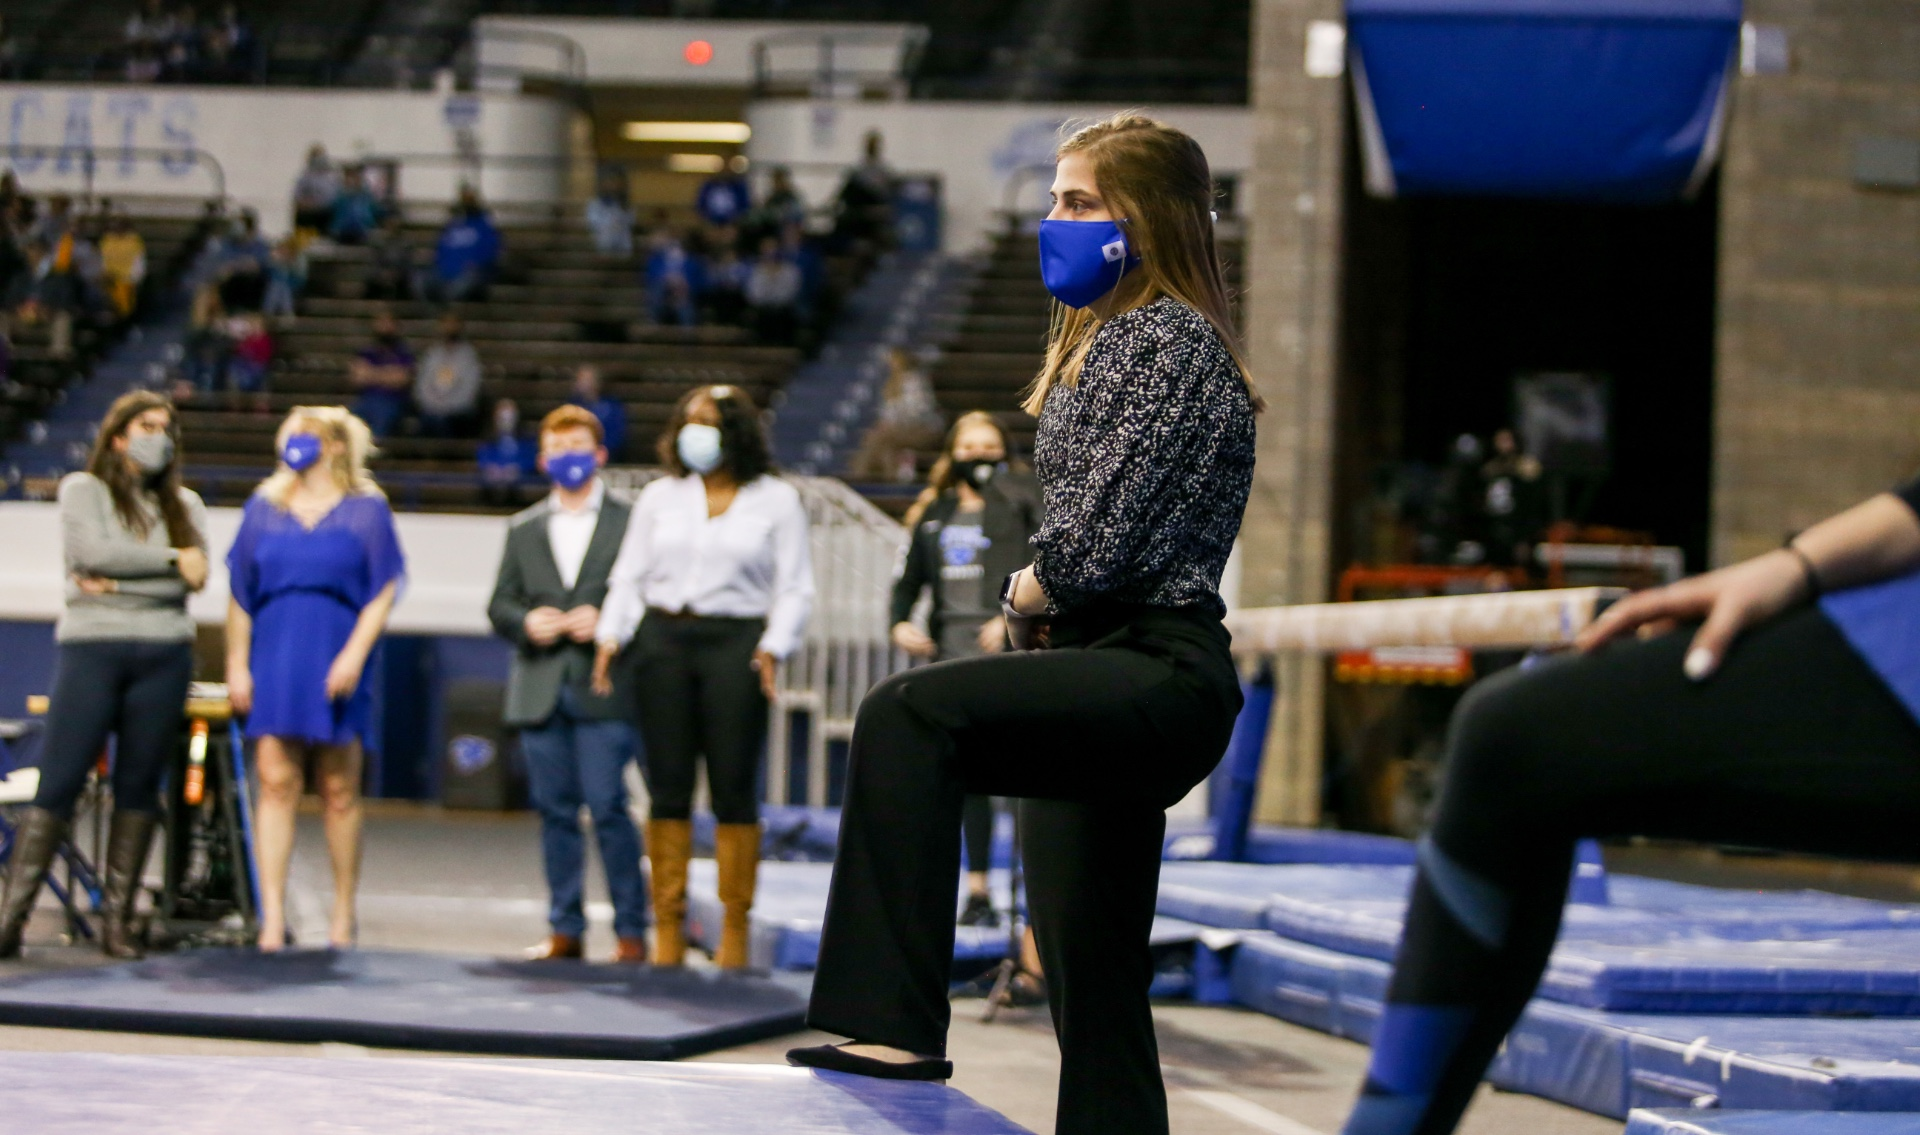 In a black and white blouse, black slacks, and a blue facemask, Allison stands at the edge of a competition space and watches her gymnastics team compete.